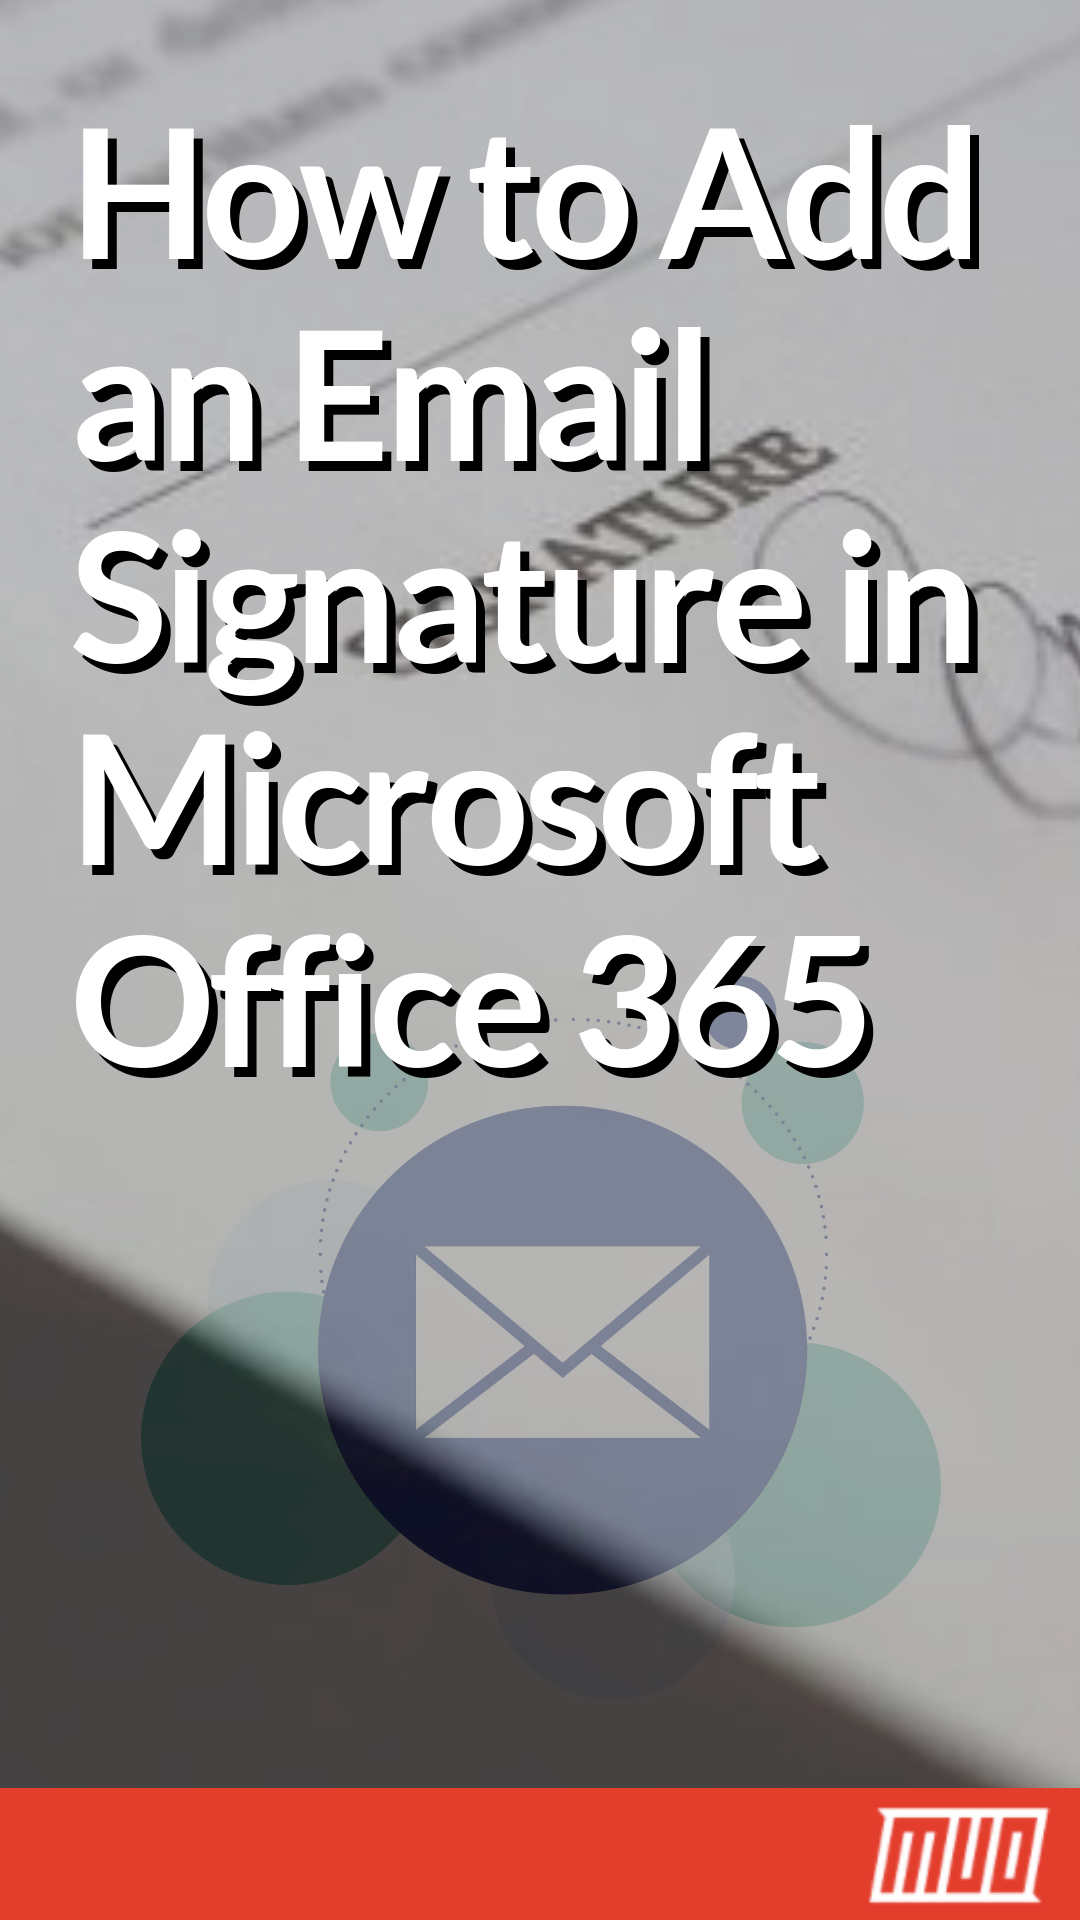 How to Add an Email Signature in Microsoft Office 365